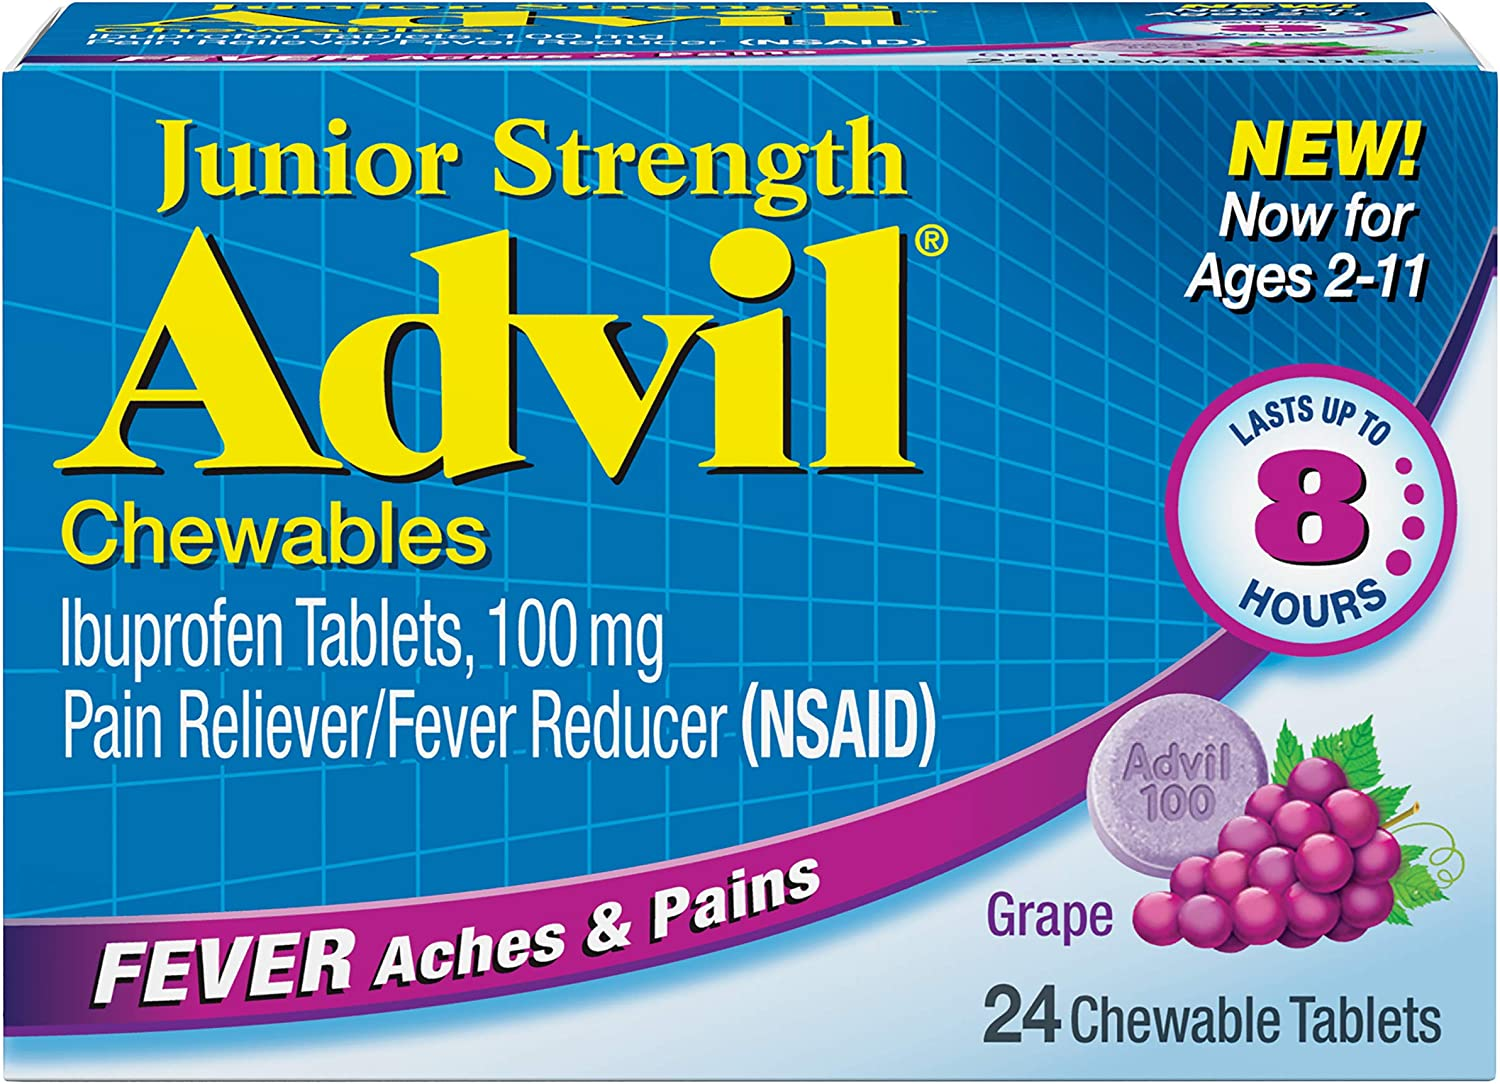 Advil Junior Strength Chewables (24 Tablets, Grape Flavor), 100mg Ibuprofen, Fever Reducer/Pain Reducer, Ages 2–11, Pack of 2: Health & Personal Care